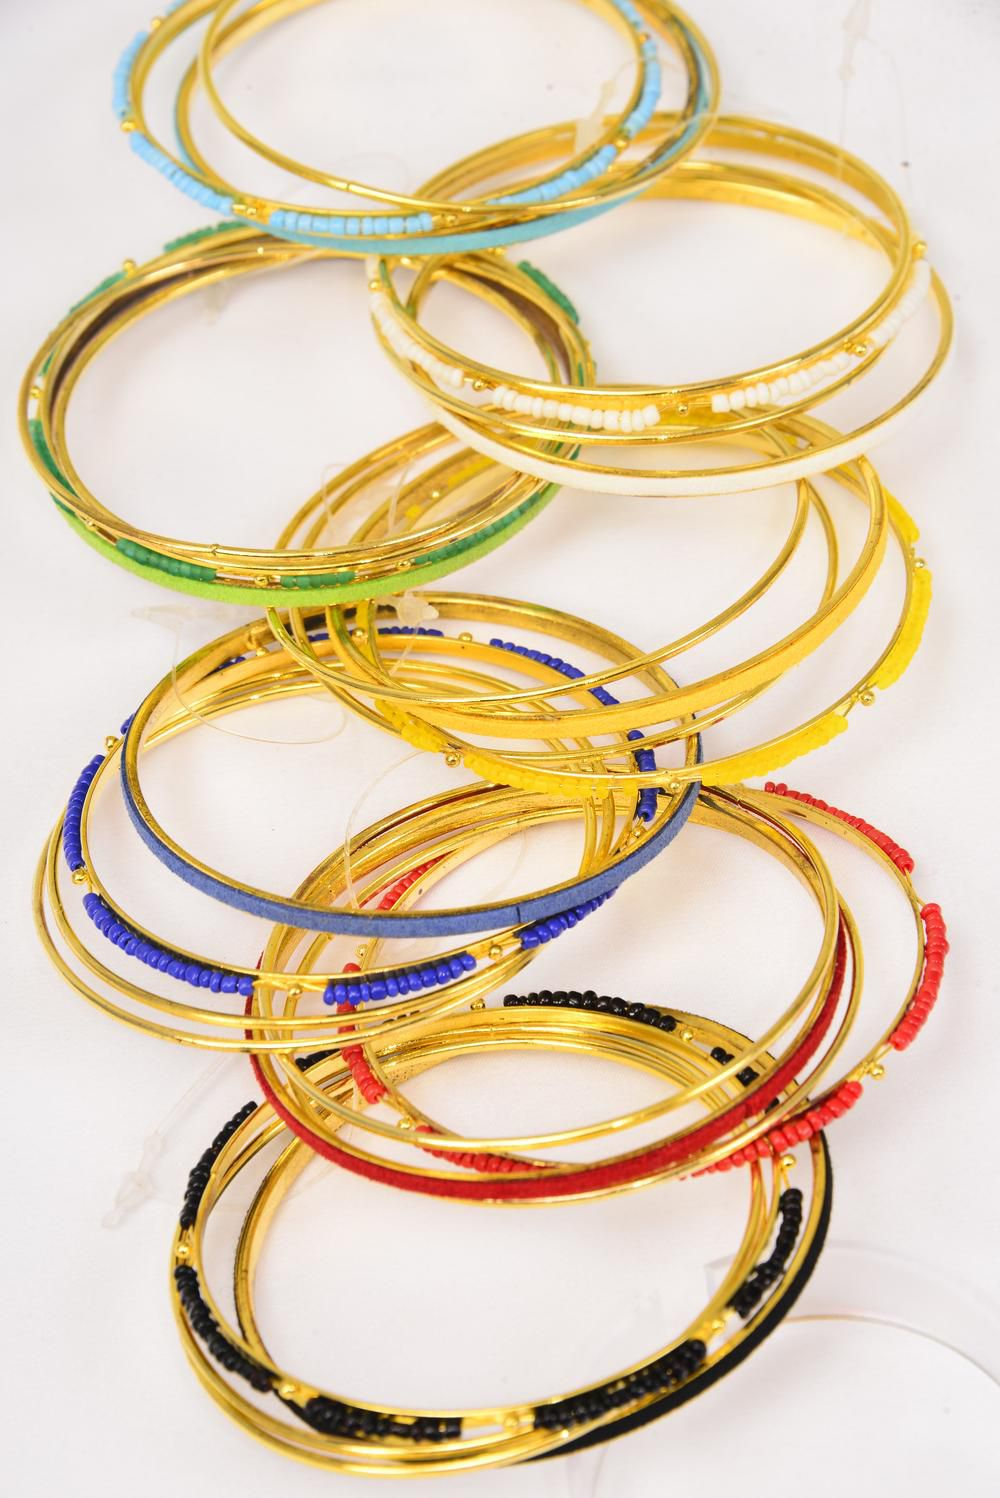 "Bangles Metal 4 pcs Gold Color Bead & Suede Mix/DZ Size-2.75"" Dia Wide,2 Black,2 White,2 Royal Blue,2 Red,2 Yellow,1 Green,1 Orange Color Asst,Hang Tag & OPP Bag & UPC Code"